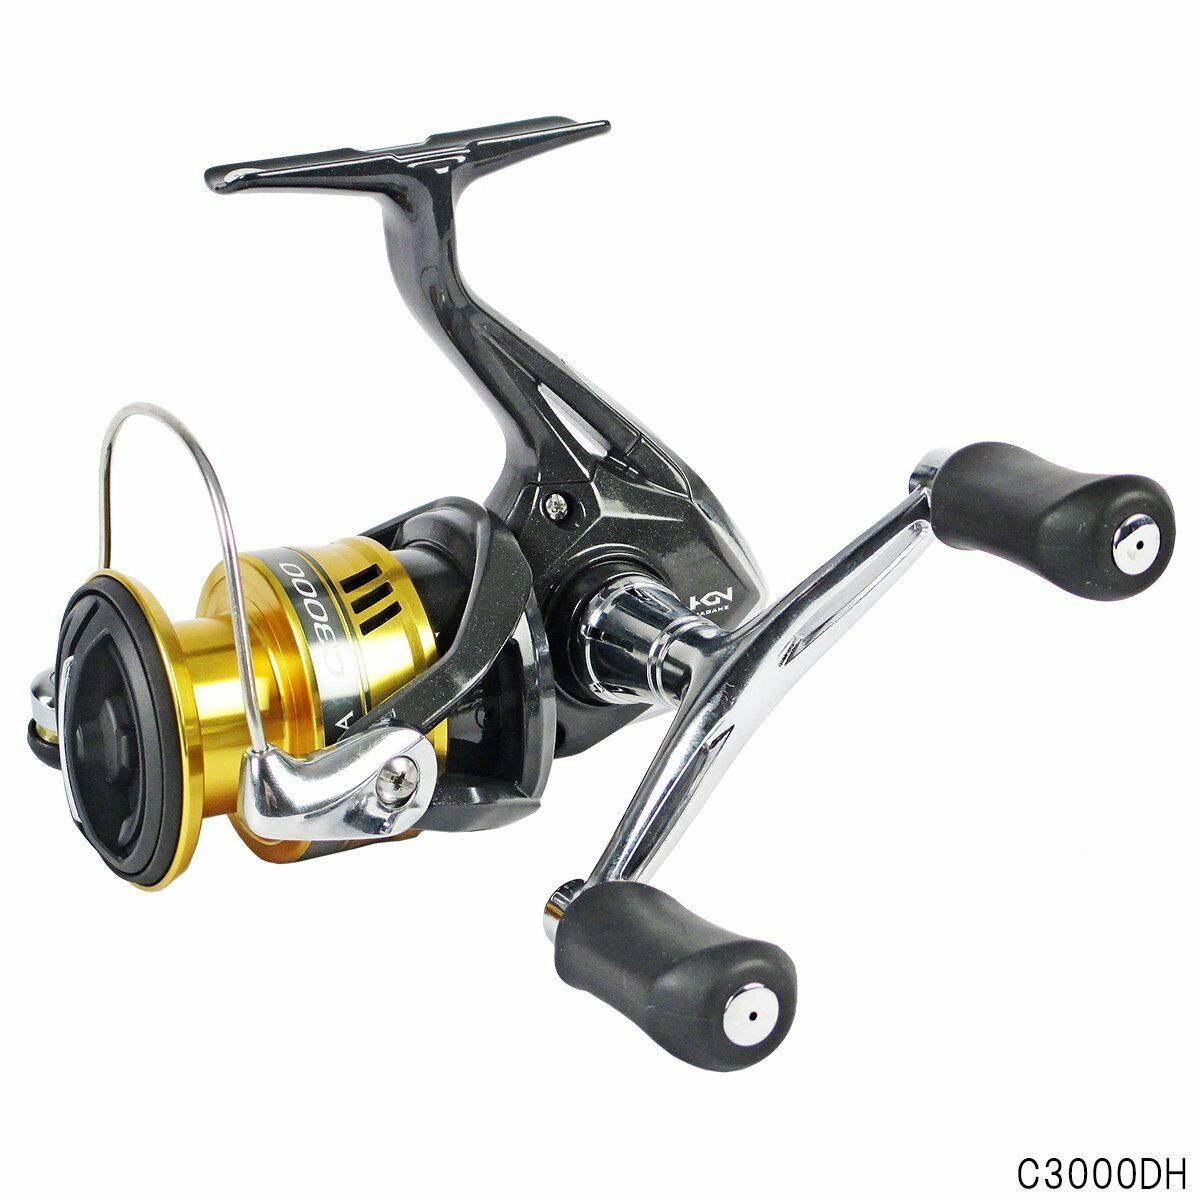 Shimano Spinning Reel 17 SAHARA SAHARA 17 C3000DH from japan 【Brand New in Box】 0c5732